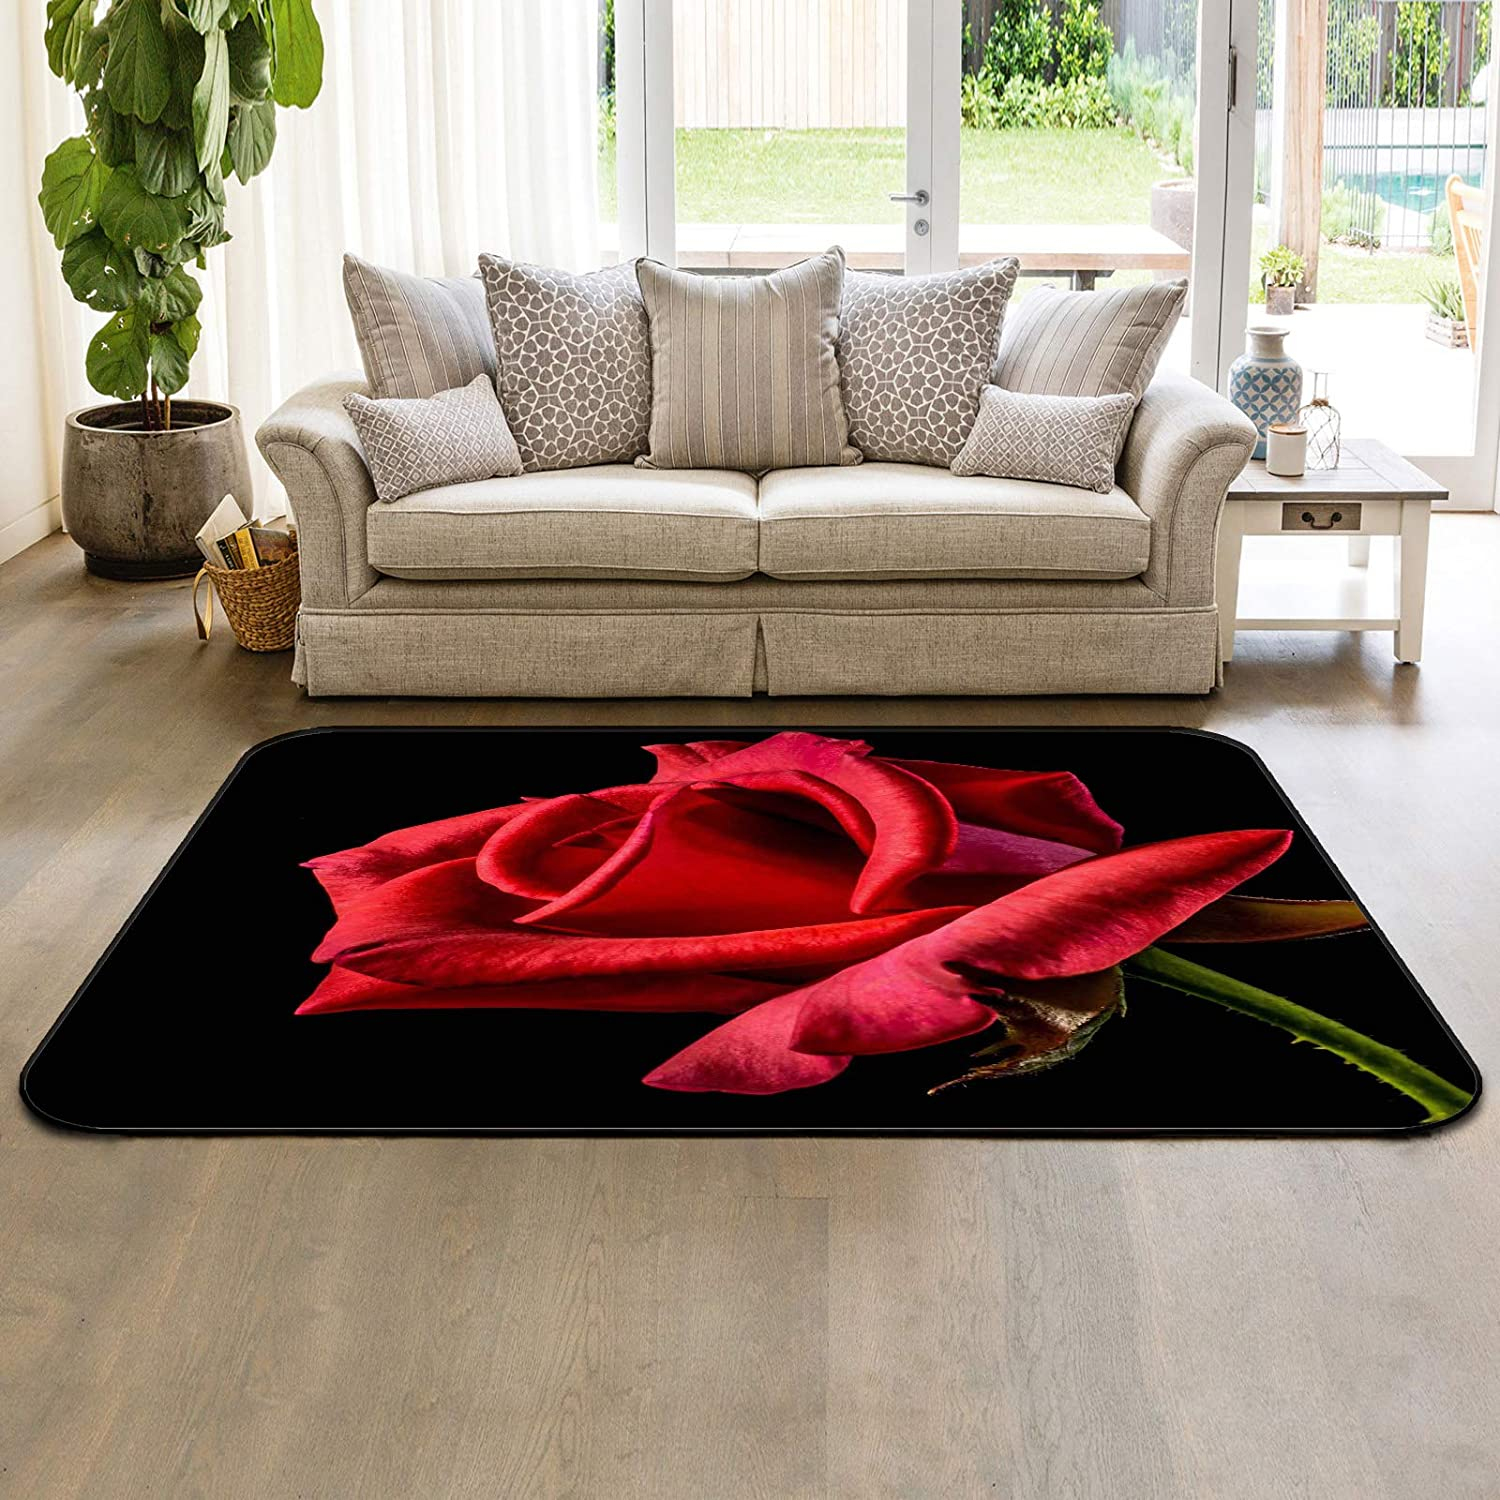 HomeDecorArt Non Slip Indoor Throw Red Accent Rugs Floor Carpet Free shipping anywhere Department store in the nation